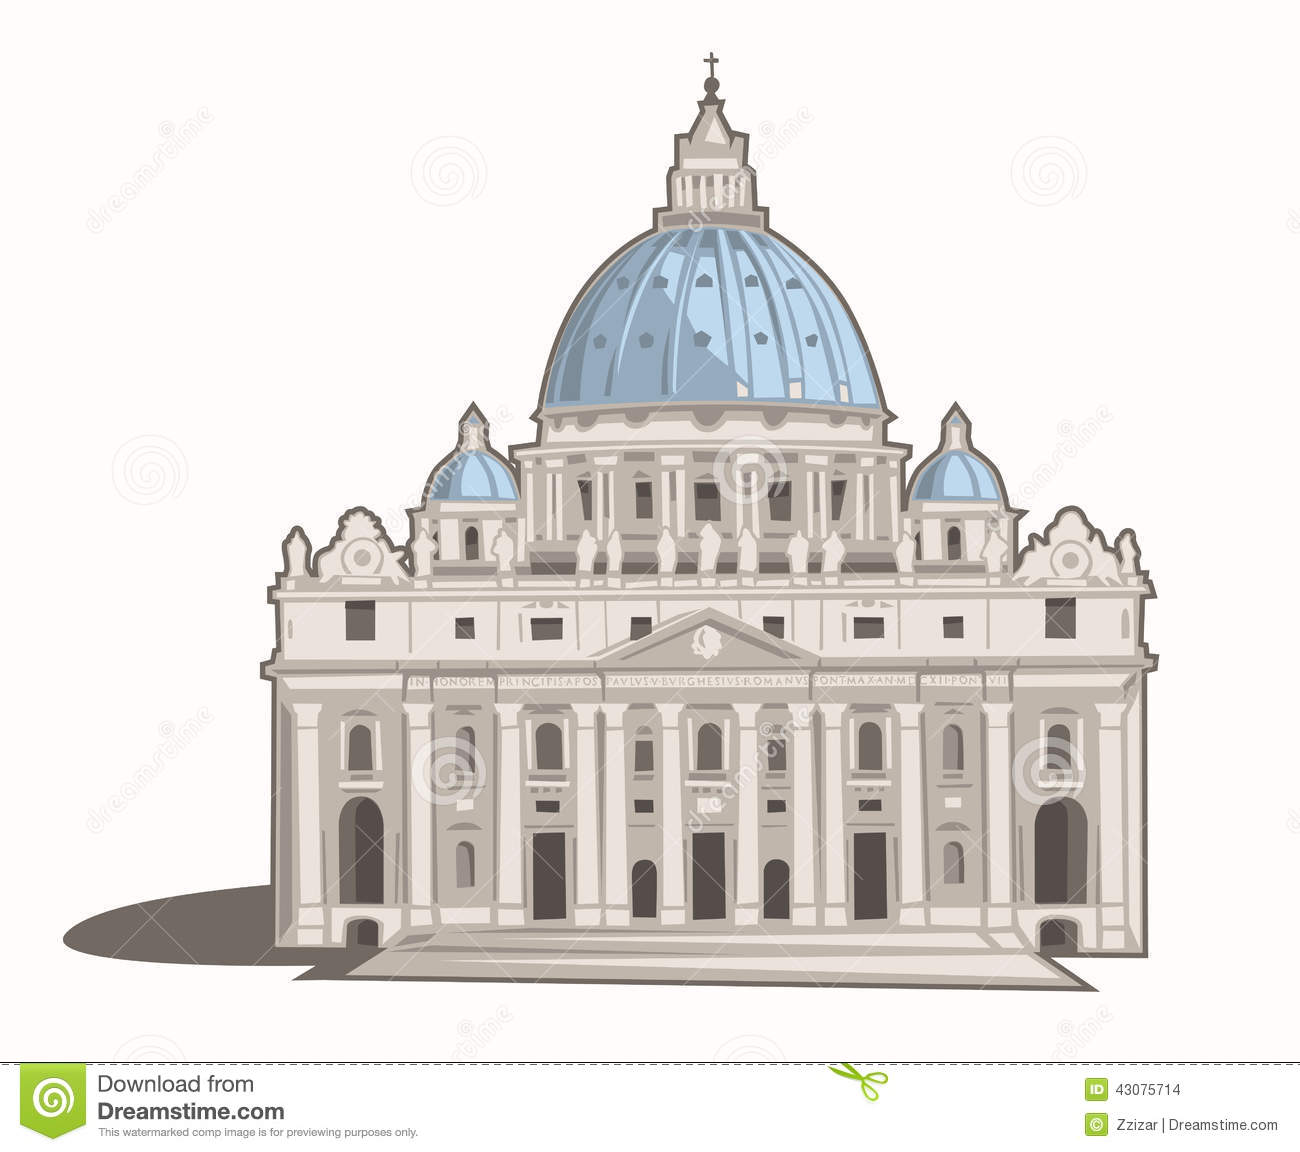 St. Peter's Basilica Stock Photo.